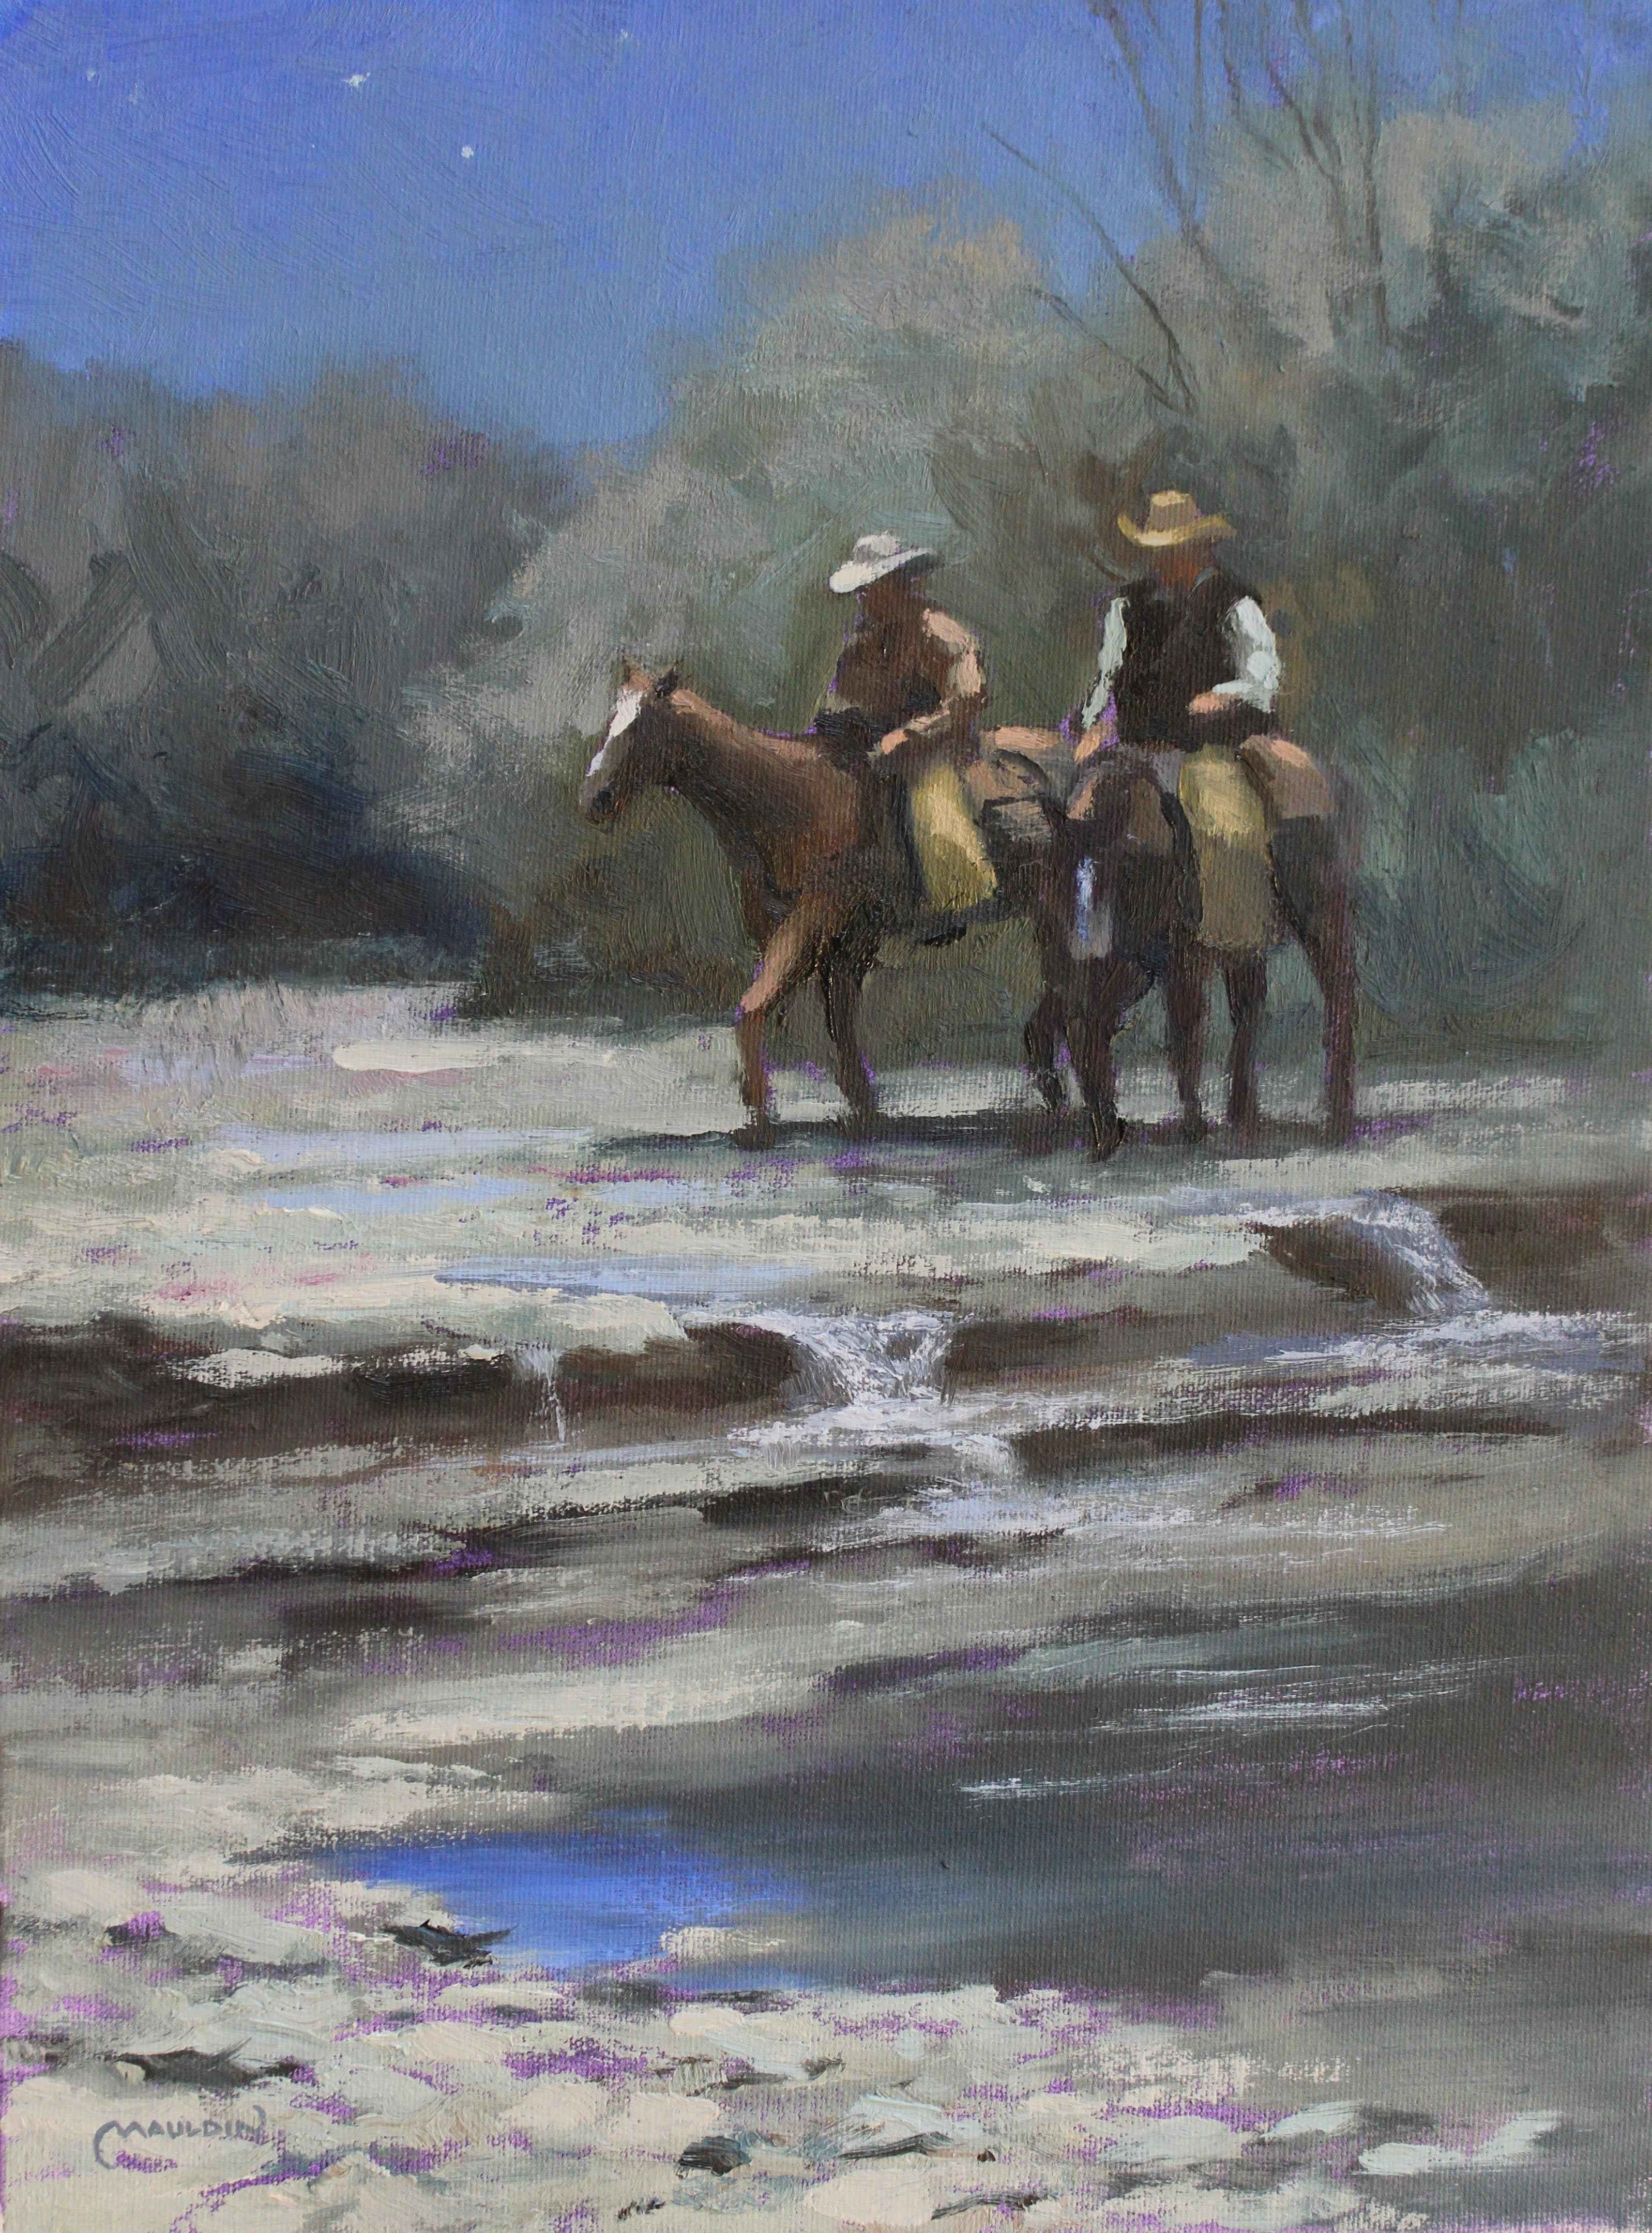 Moonlit Riders by  Chuck Mauldin - Masterpiece Online